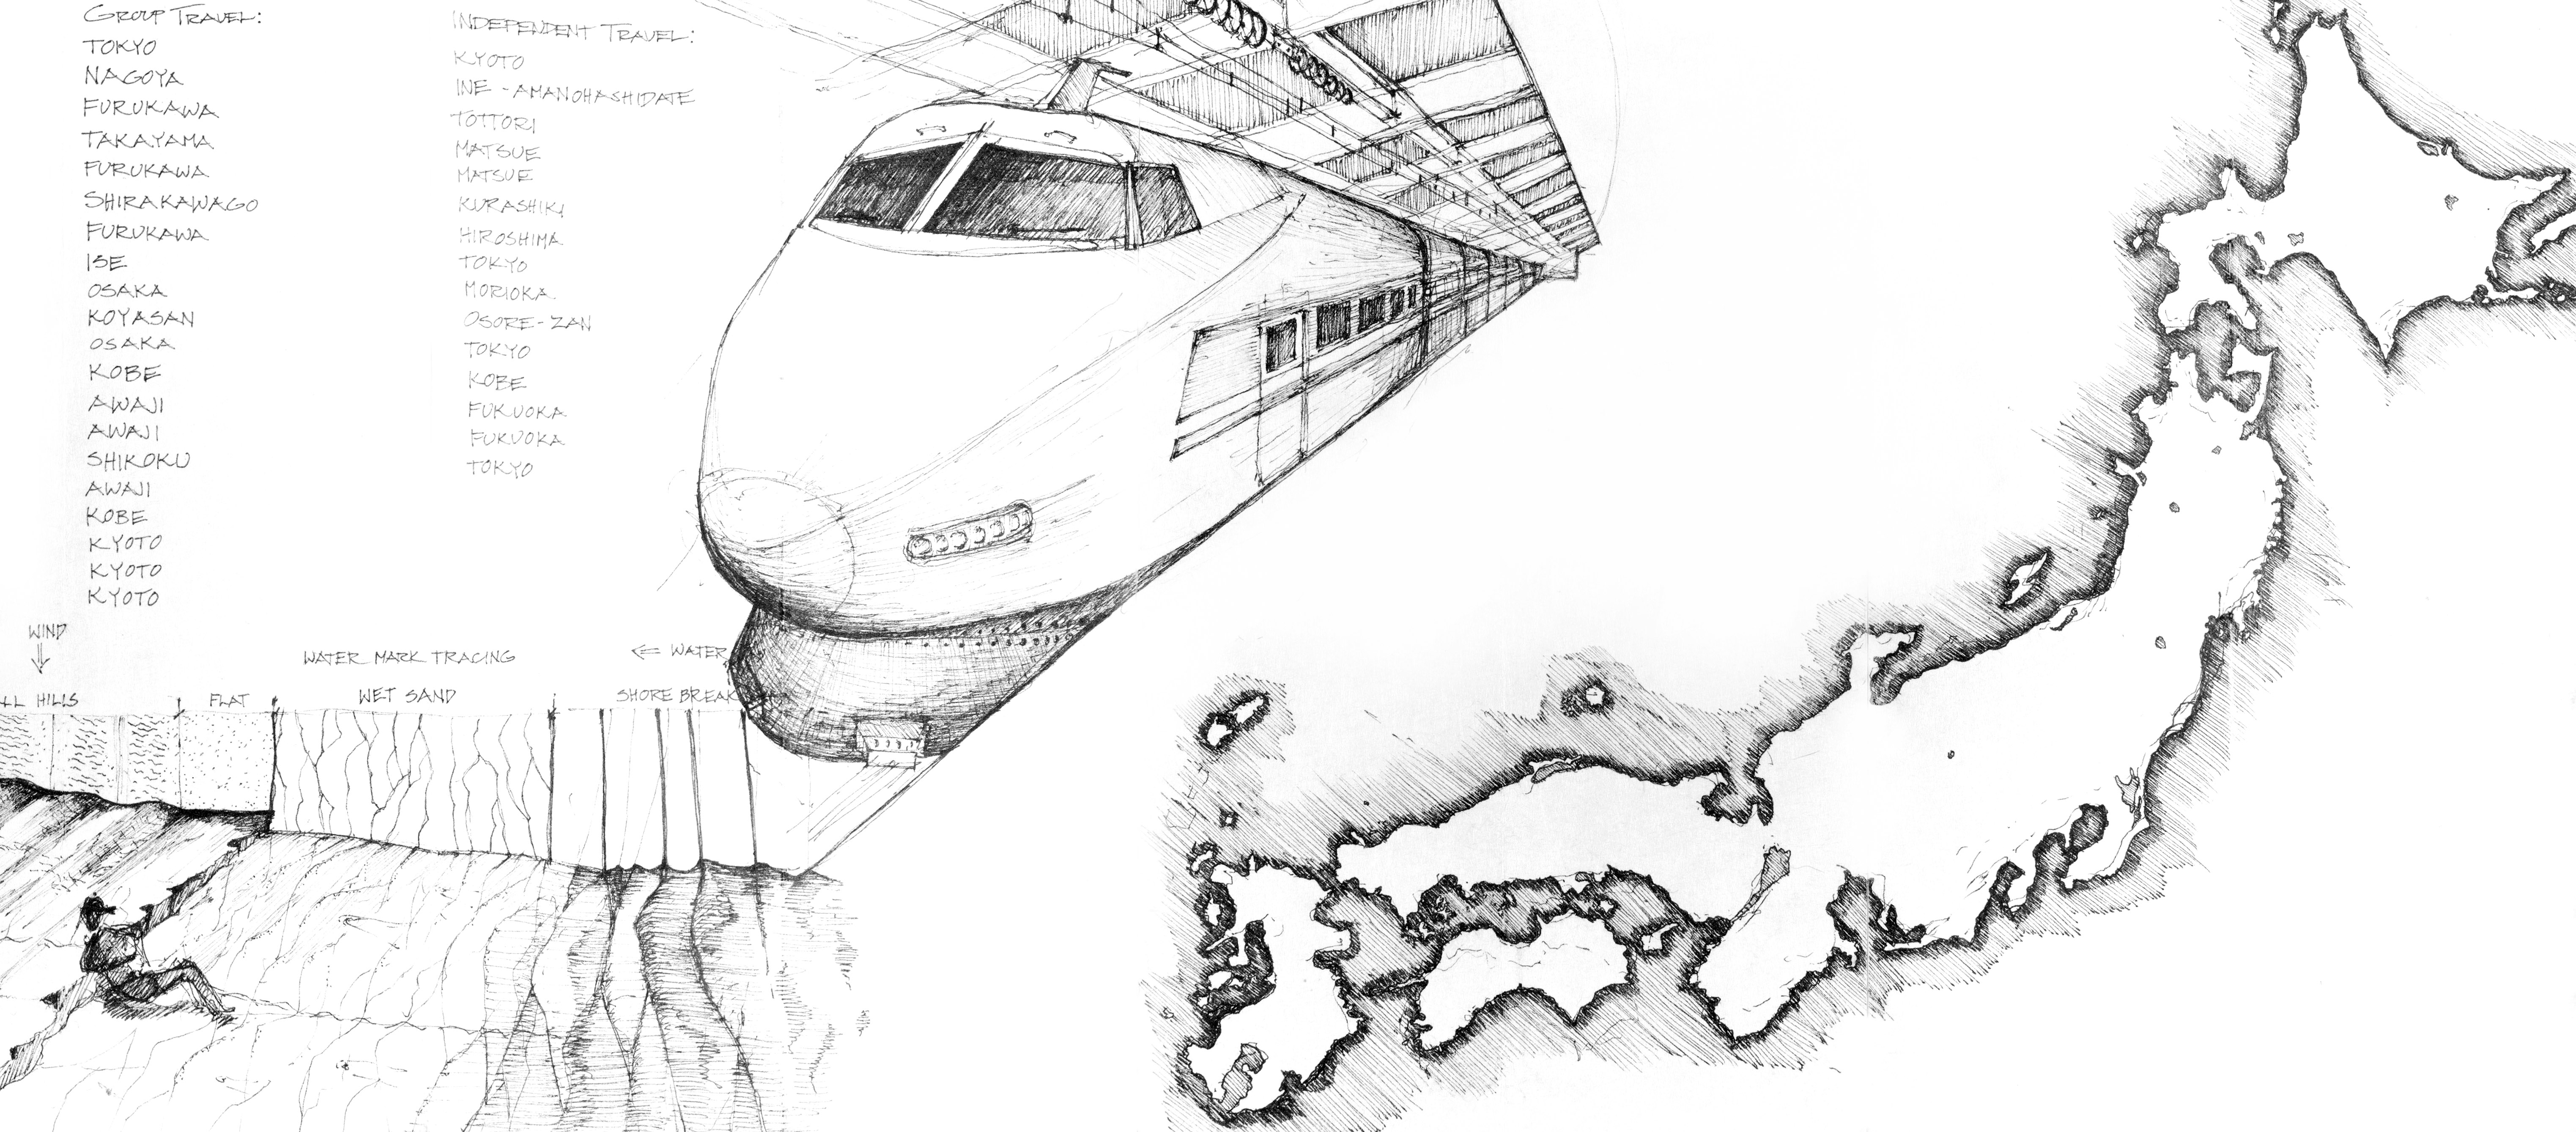 5.30-5.33 Bullet train maglev technology in Japan with the Shinkansen